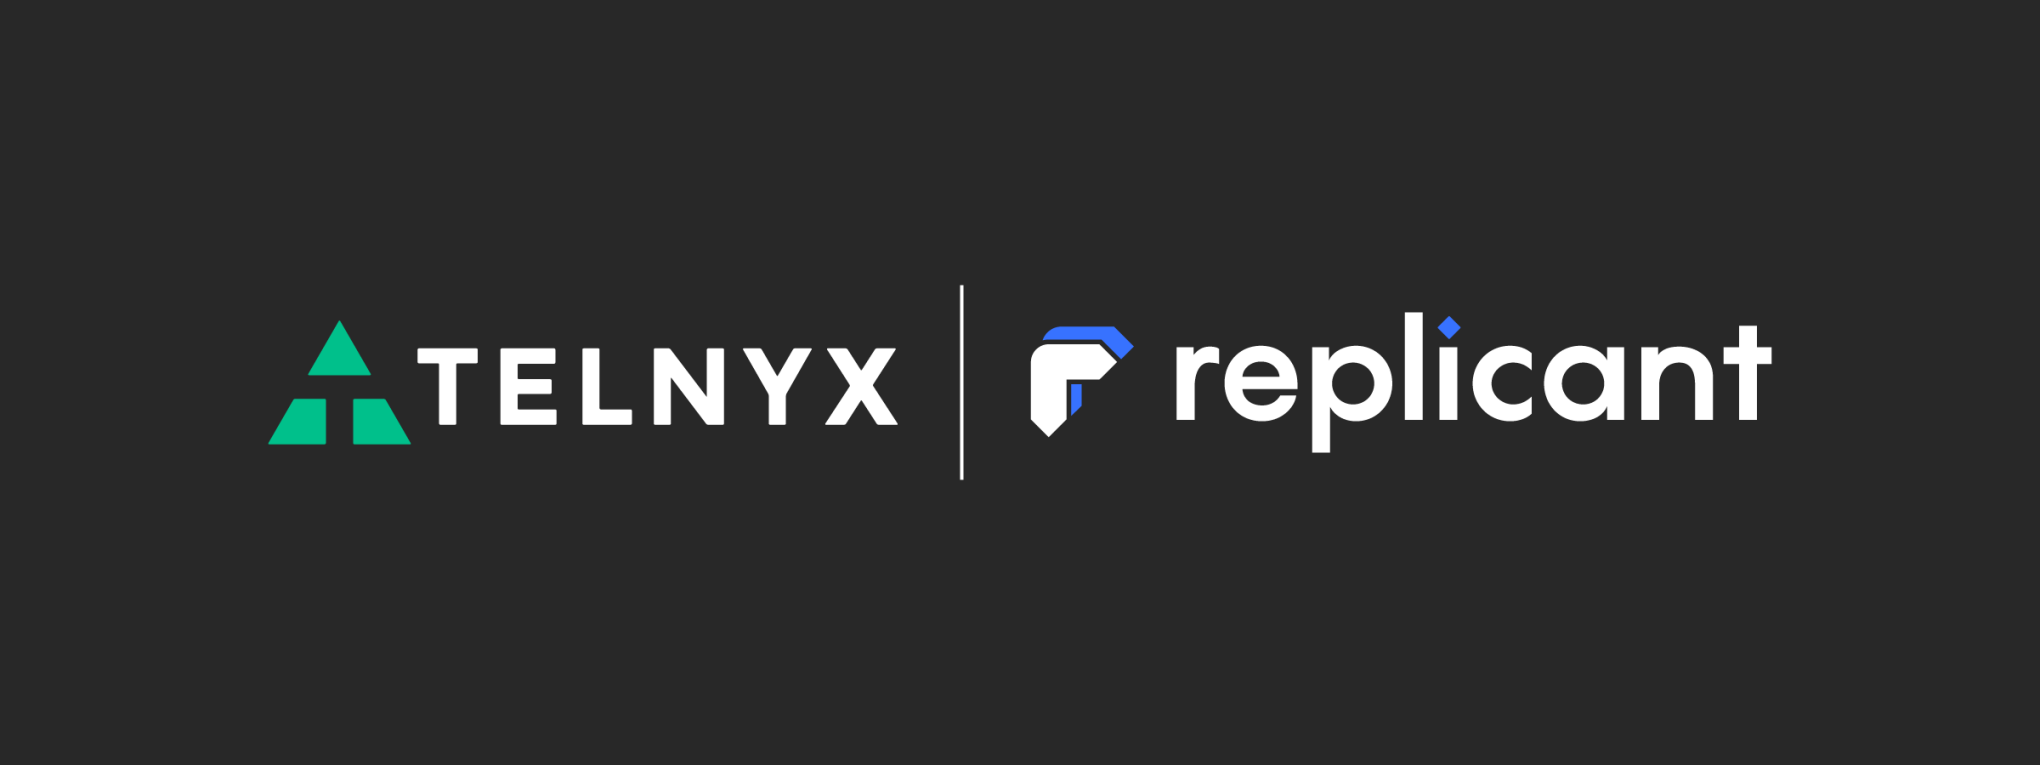 Telnyx and Replicant_banner